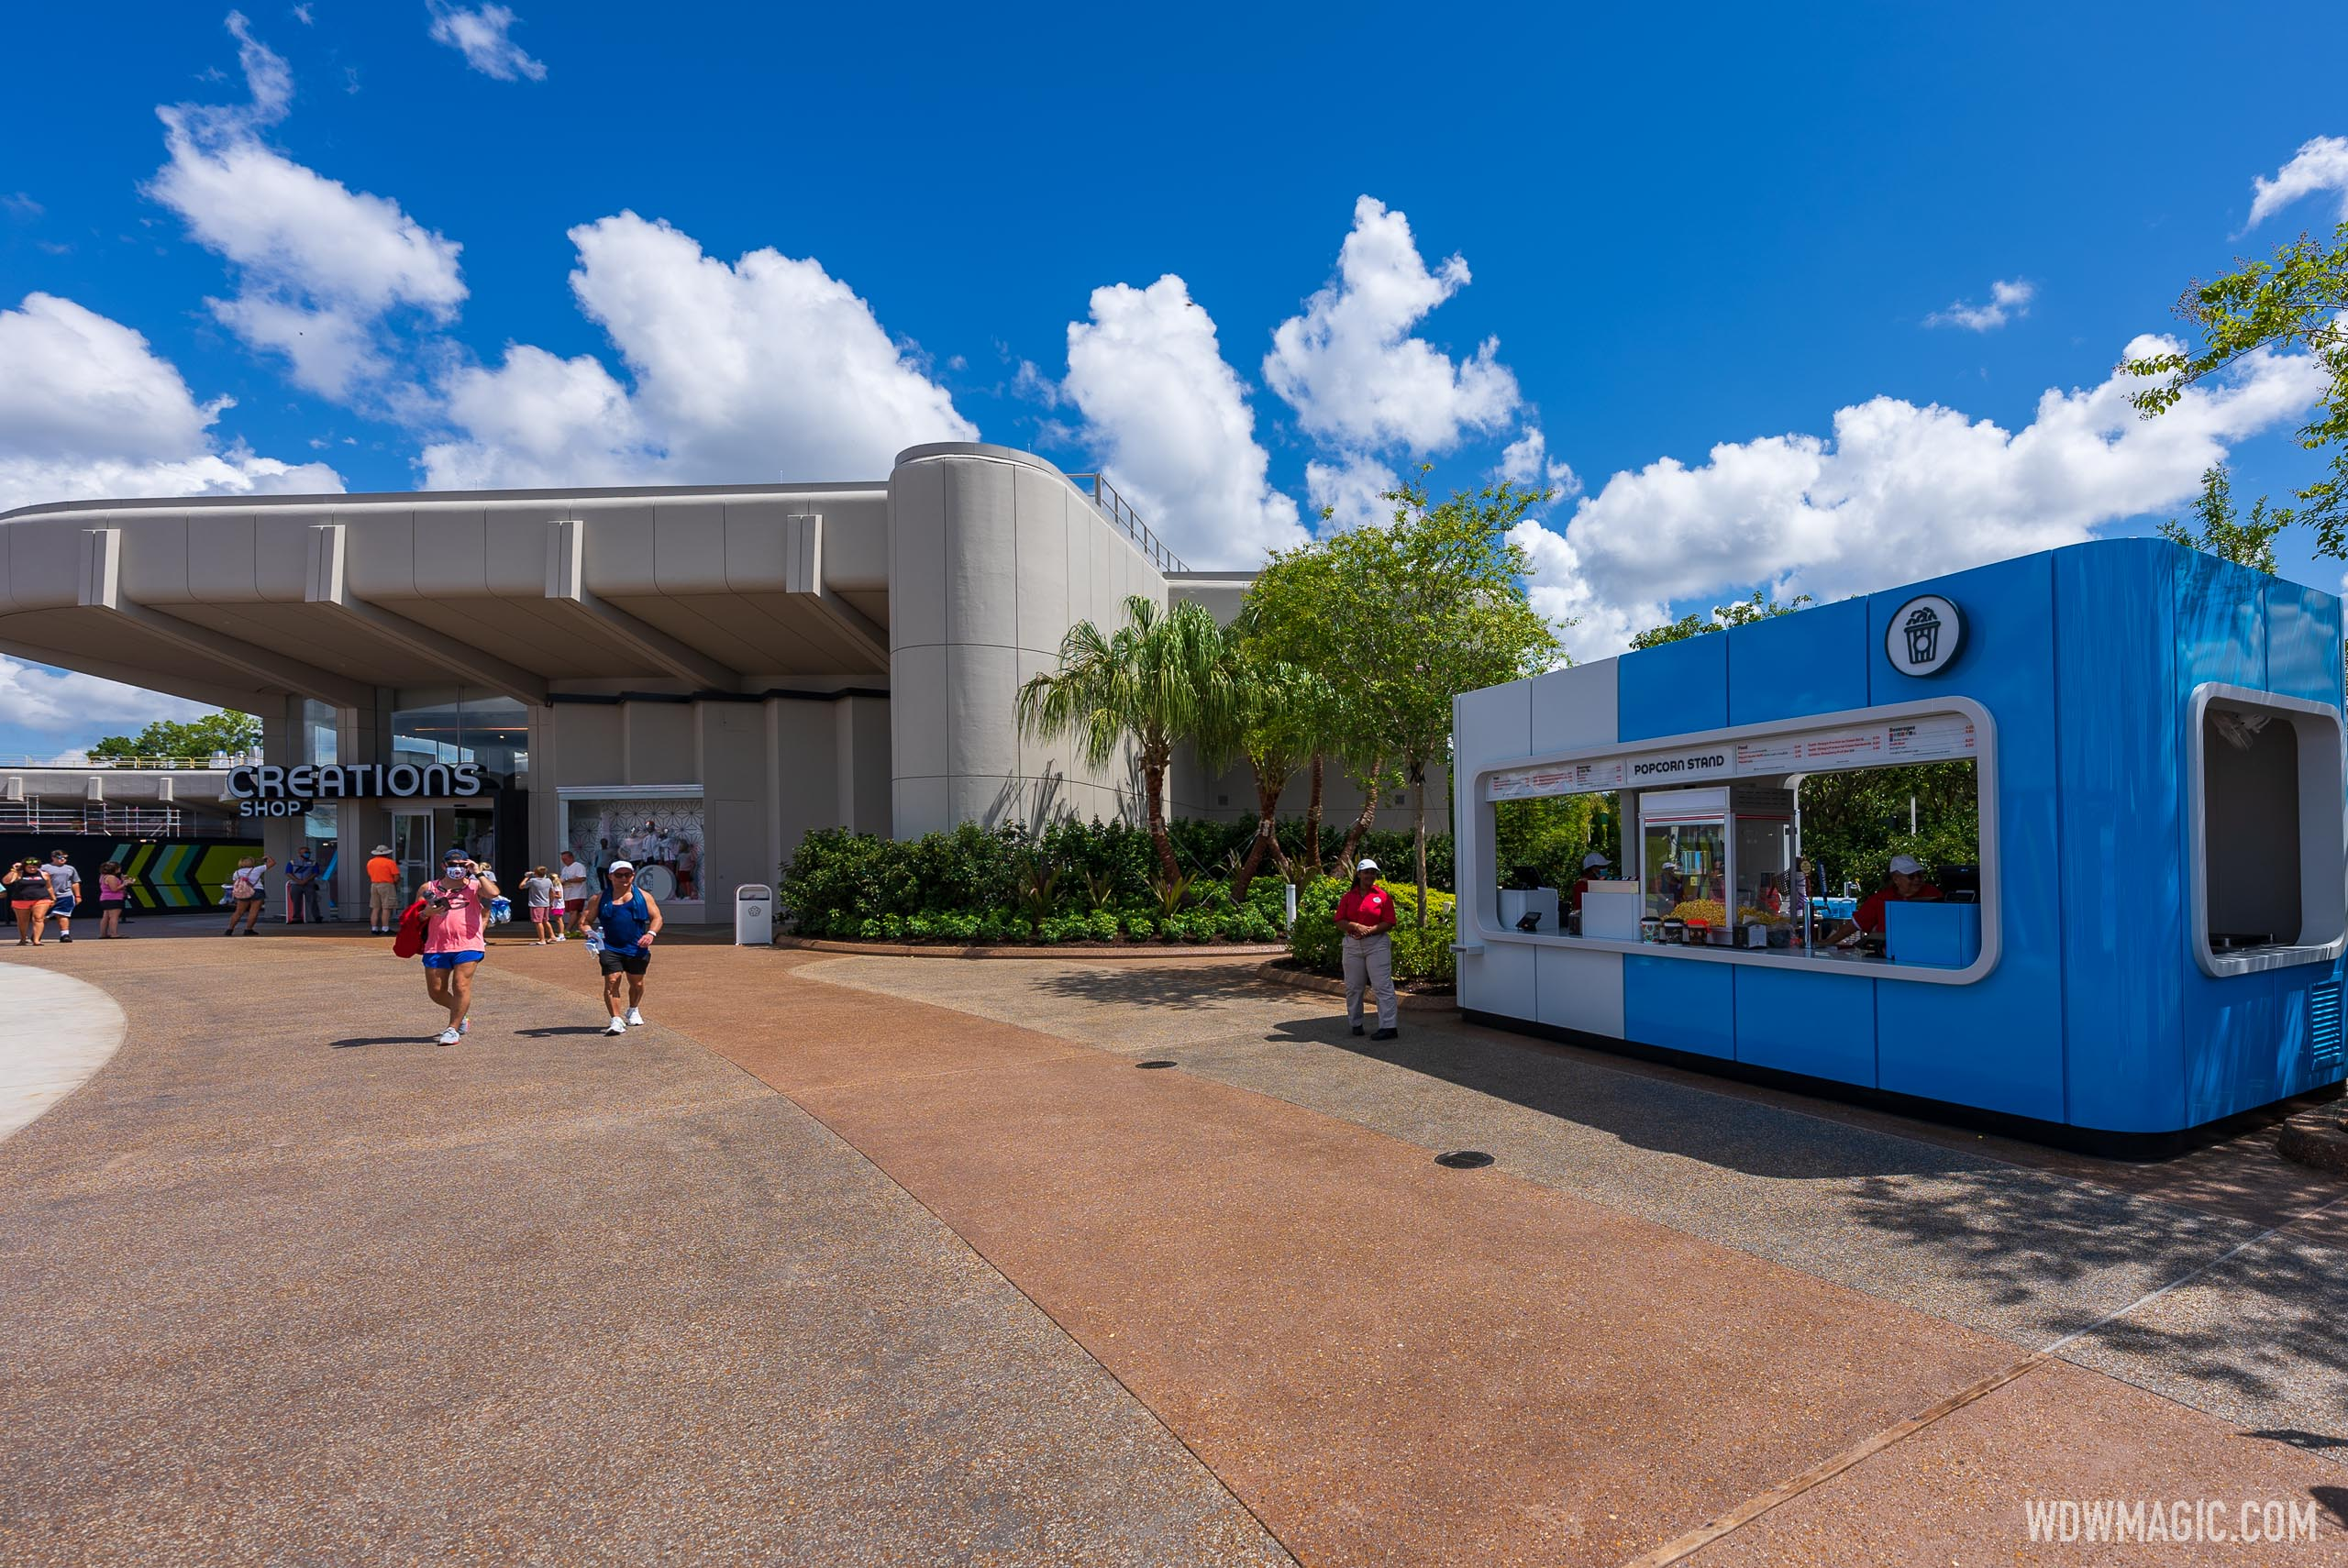 New snack kiosk opens alongside Creations Shop at EPCOT